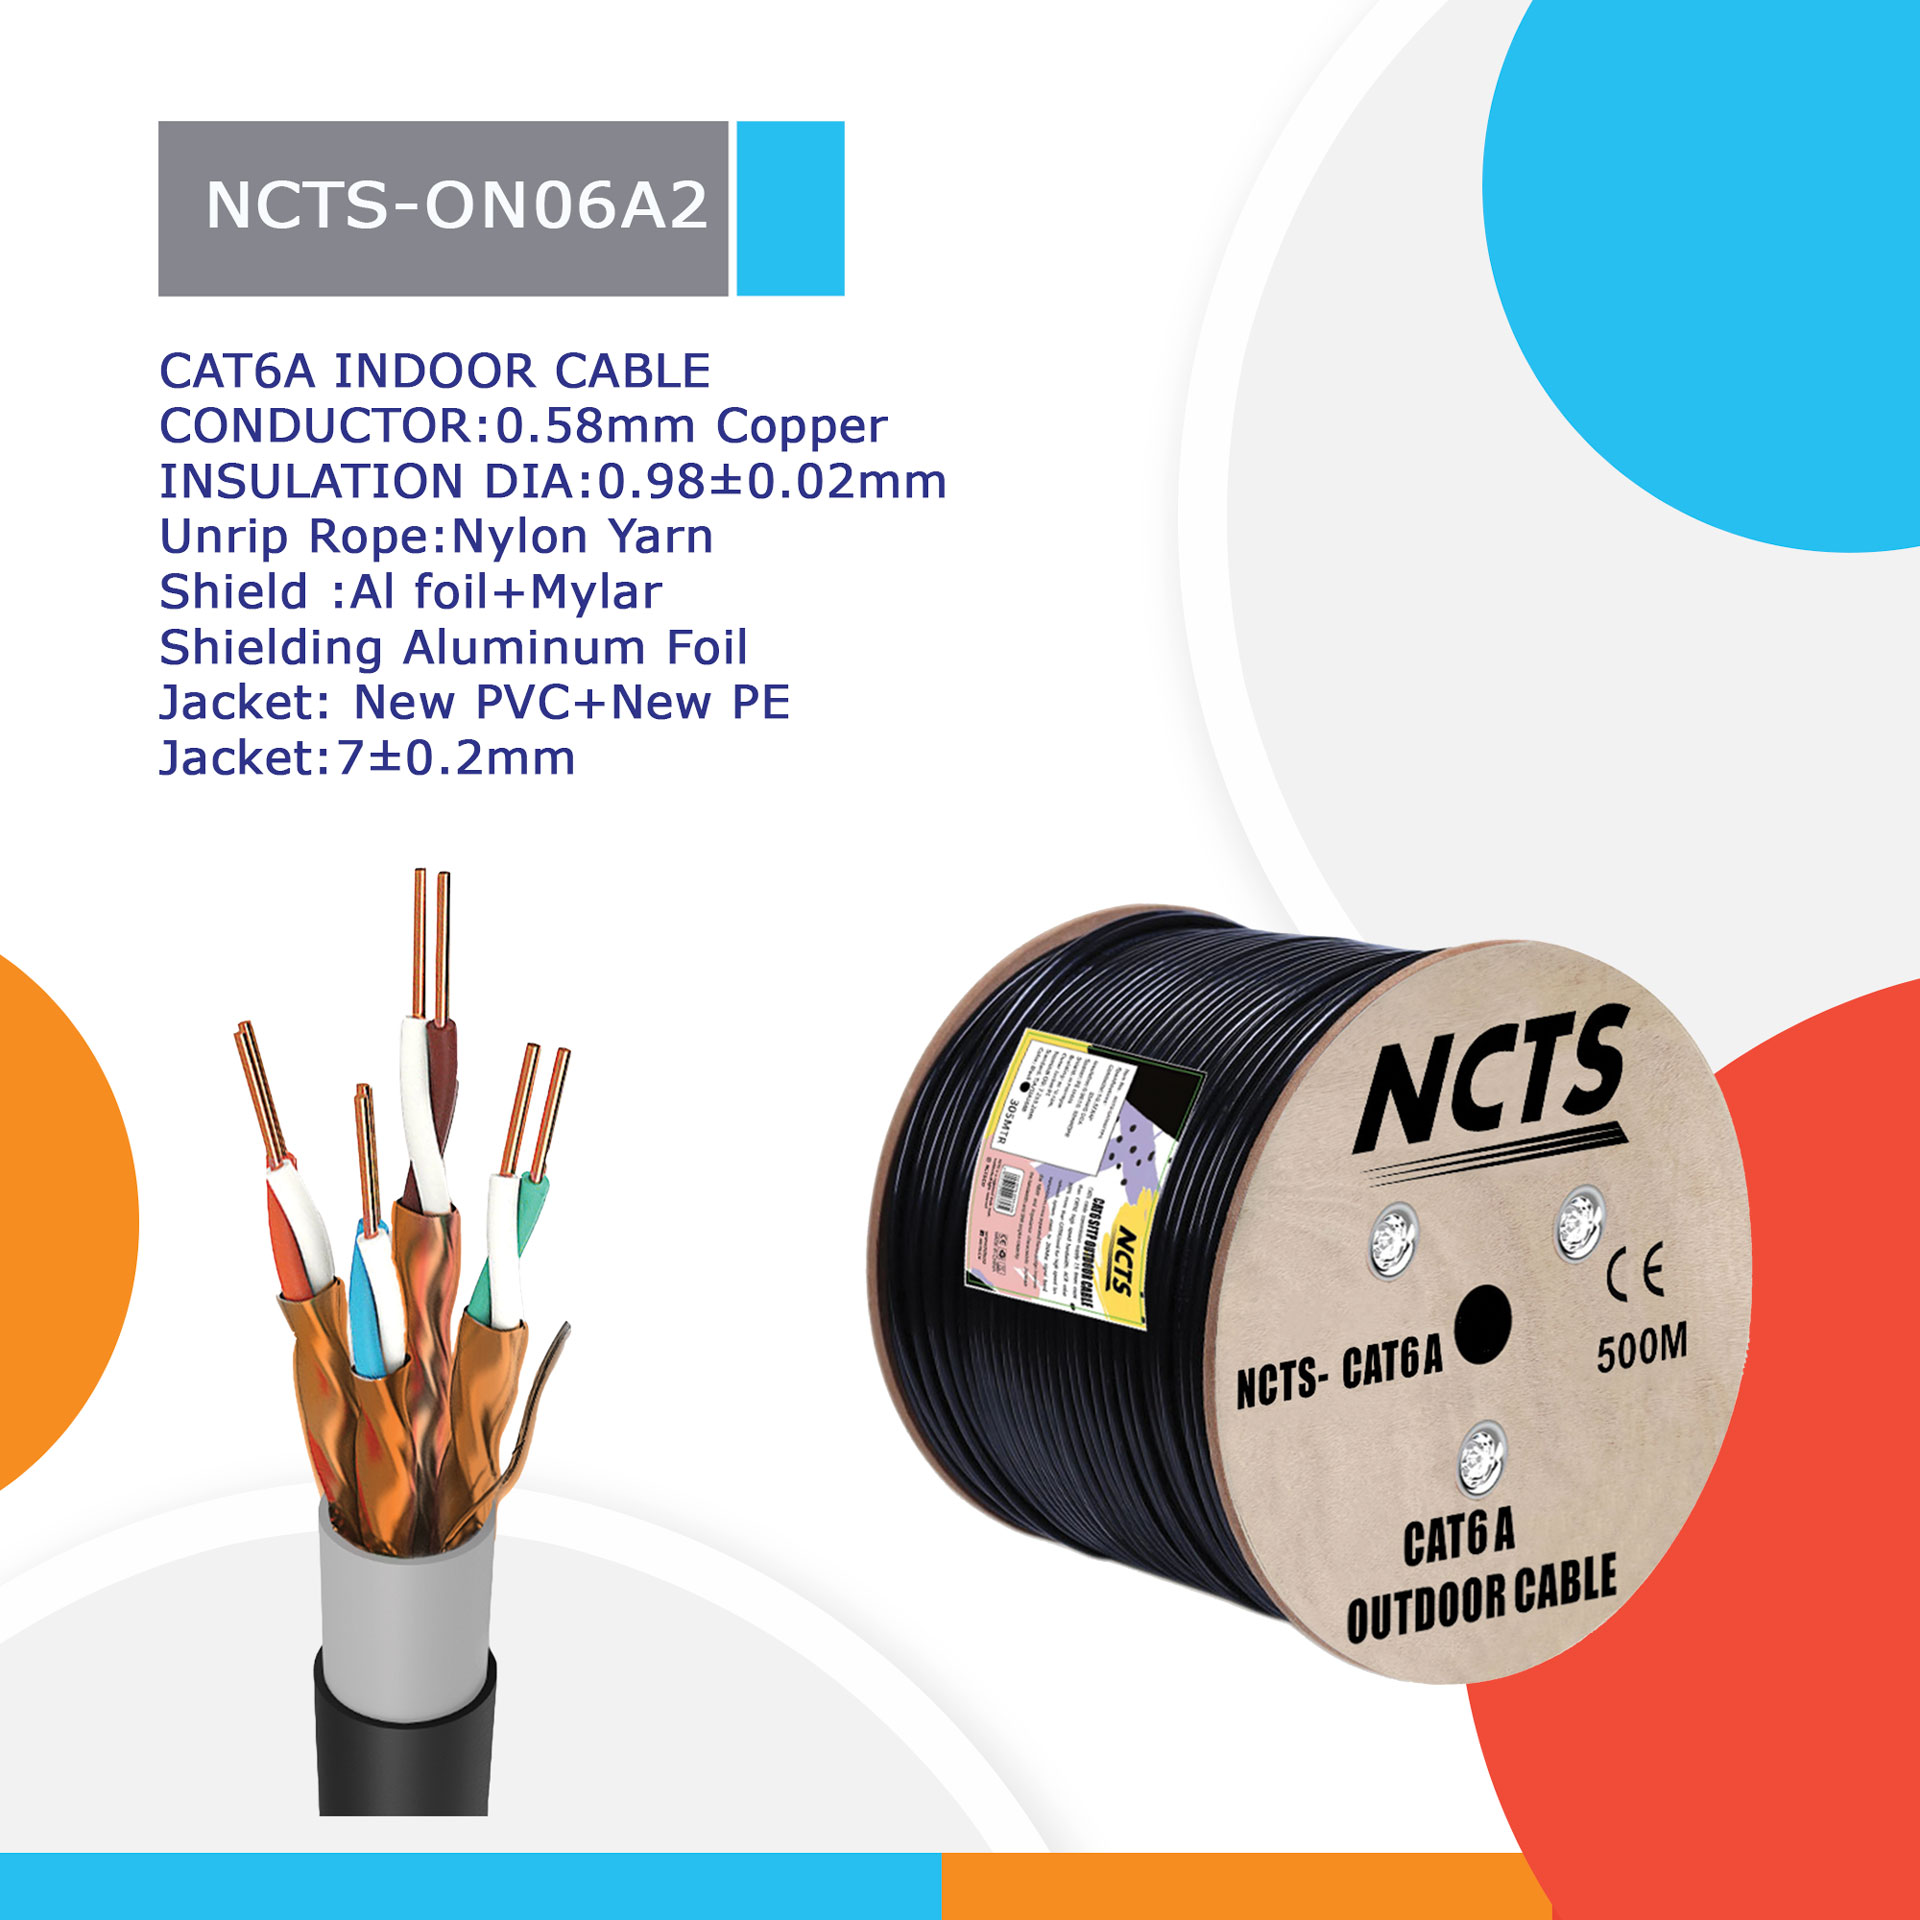 NCTS-ON06A2